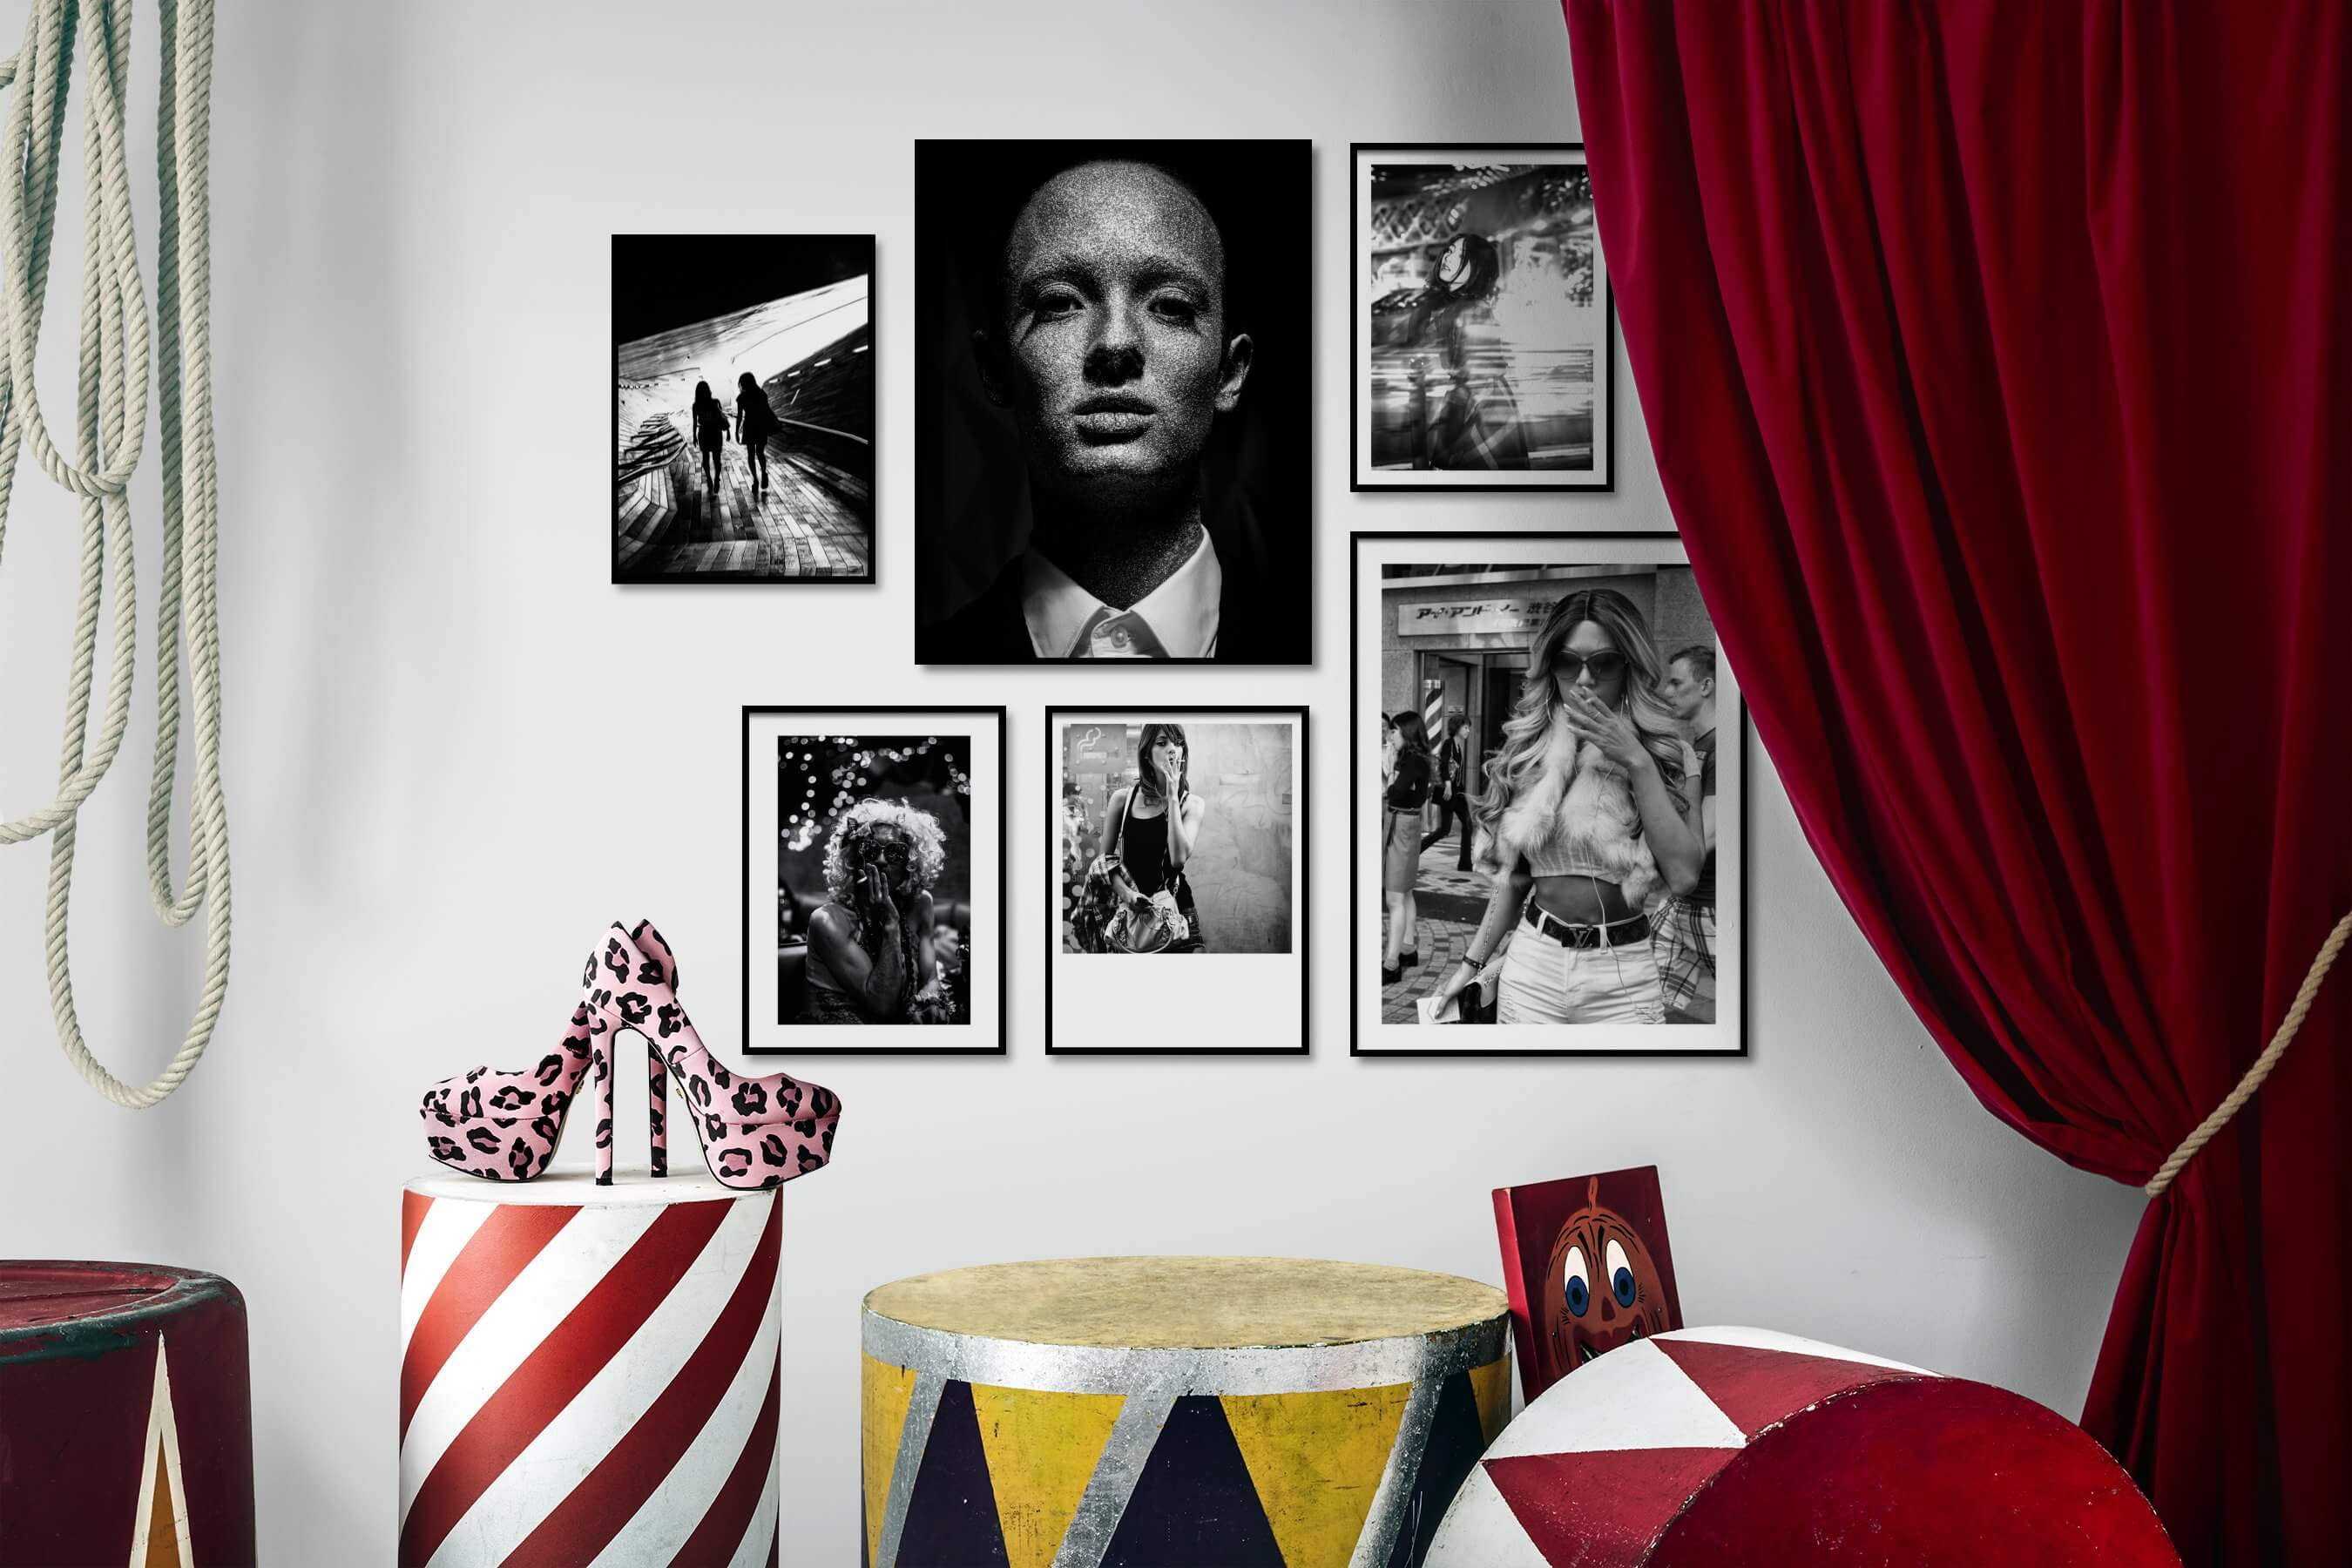 Gallery wall idea with six framed pictures arranged on a wall depicting Black & White, City Life, Fashion & Beauty, and Dark Tones